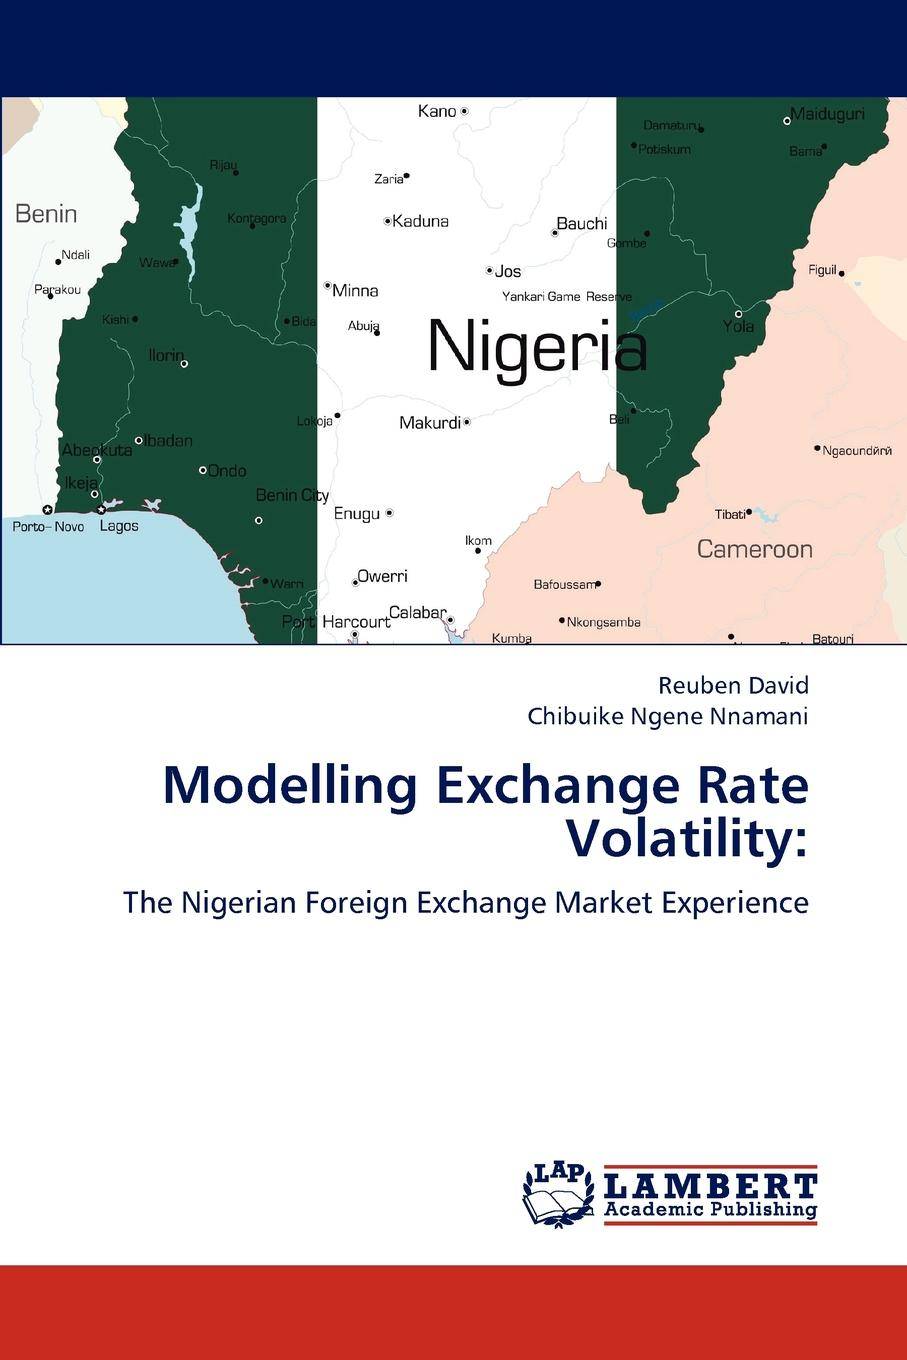 David Reuben, Nnamani Chibuike Ngene Modelling Exchange Rate Volatility butta singh entropy and heart rate variability